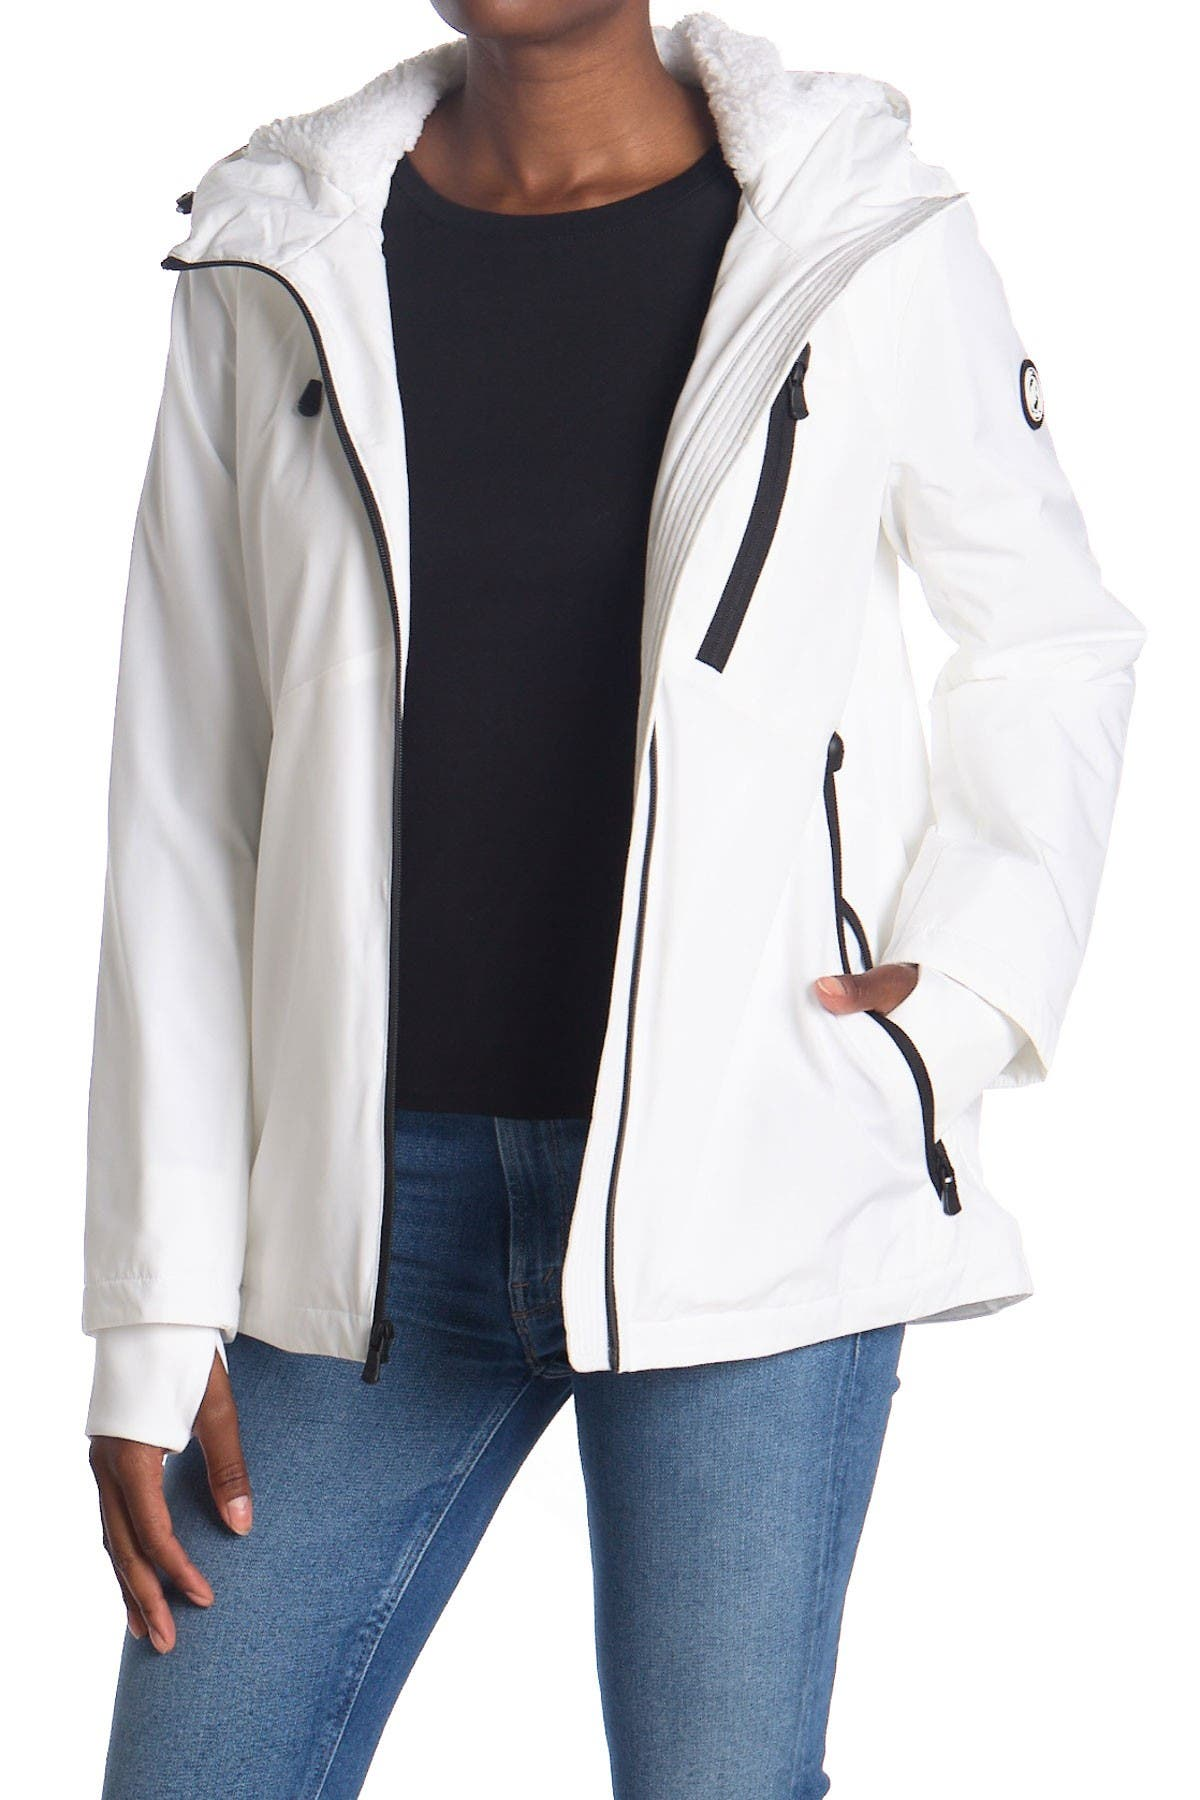 Image of Michael Kors Plush Lined Zip Front Hooded Jacket